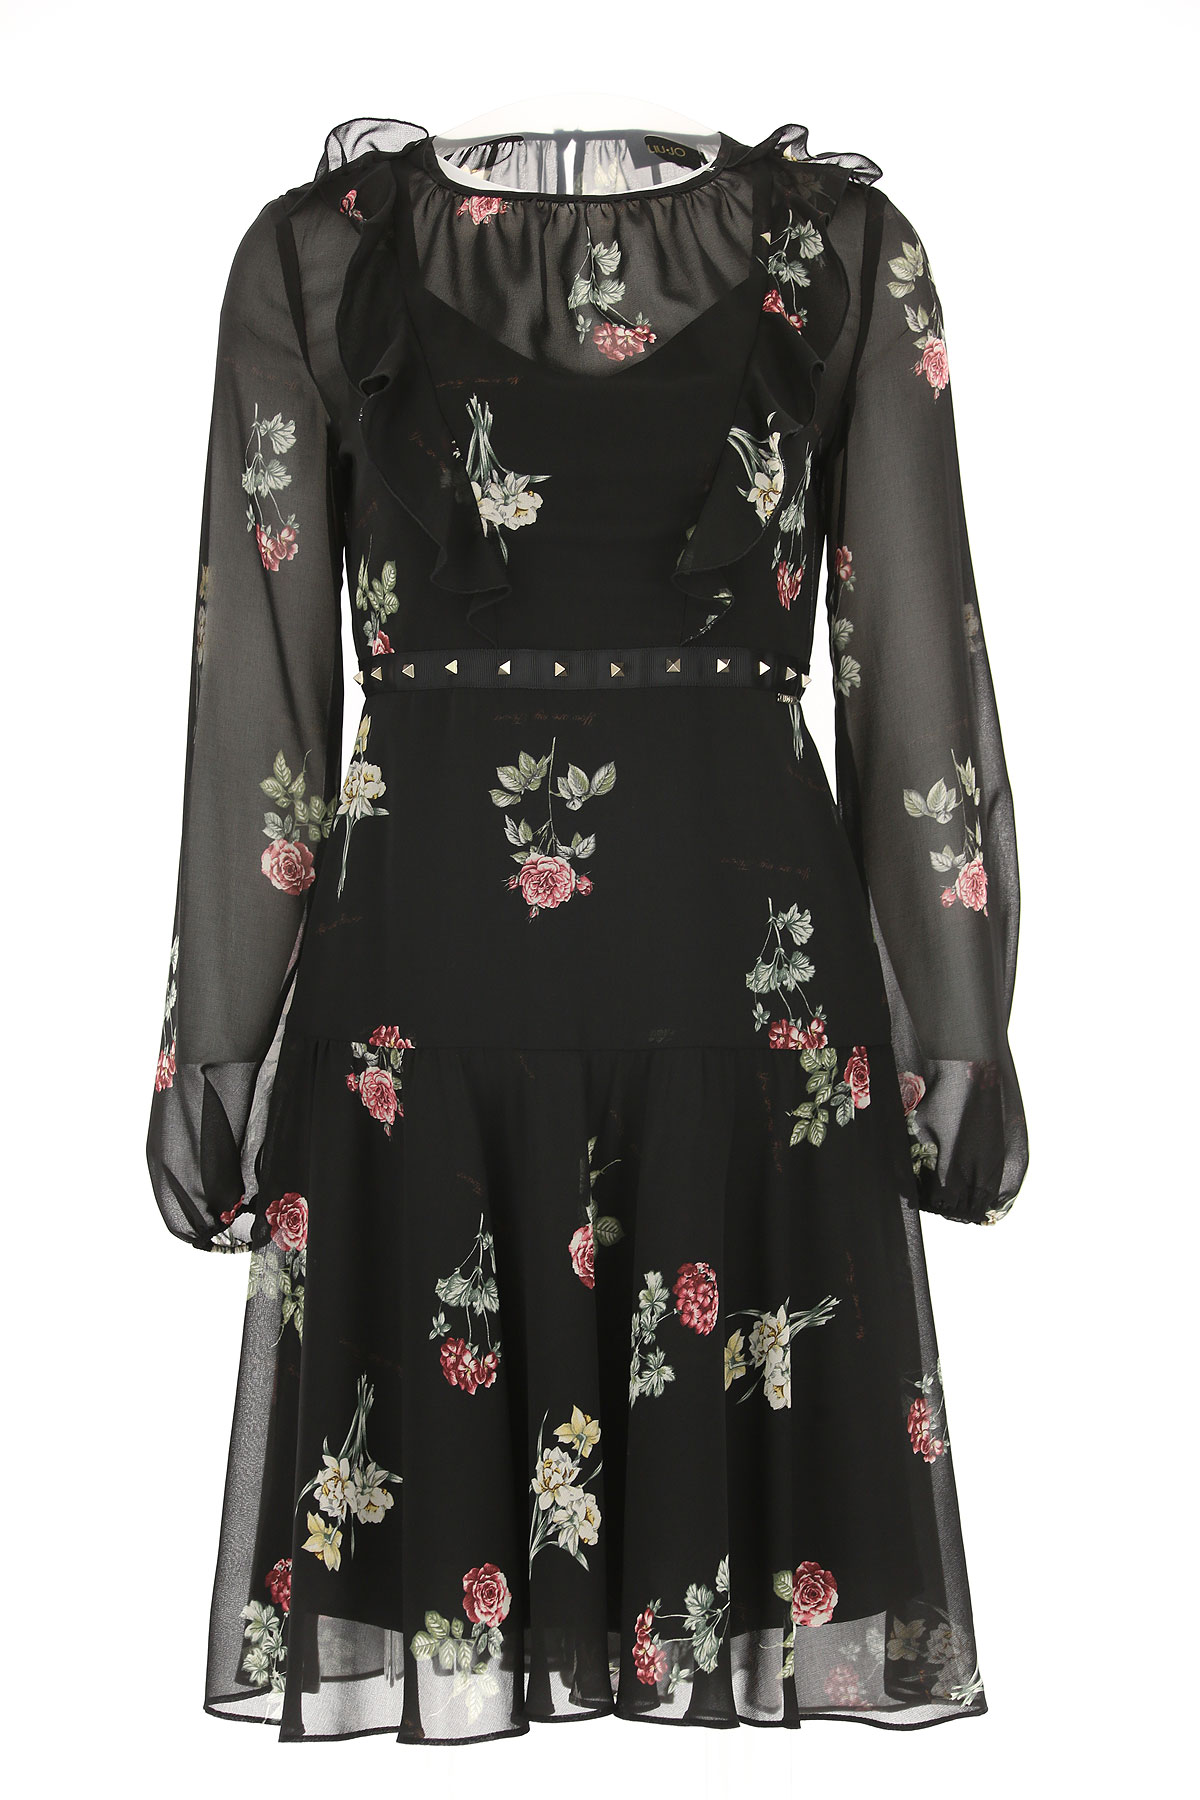 Image of Liu Jo Dress for Women, Evening Cocktail Party, Black, polyestere, 2017, 6 8